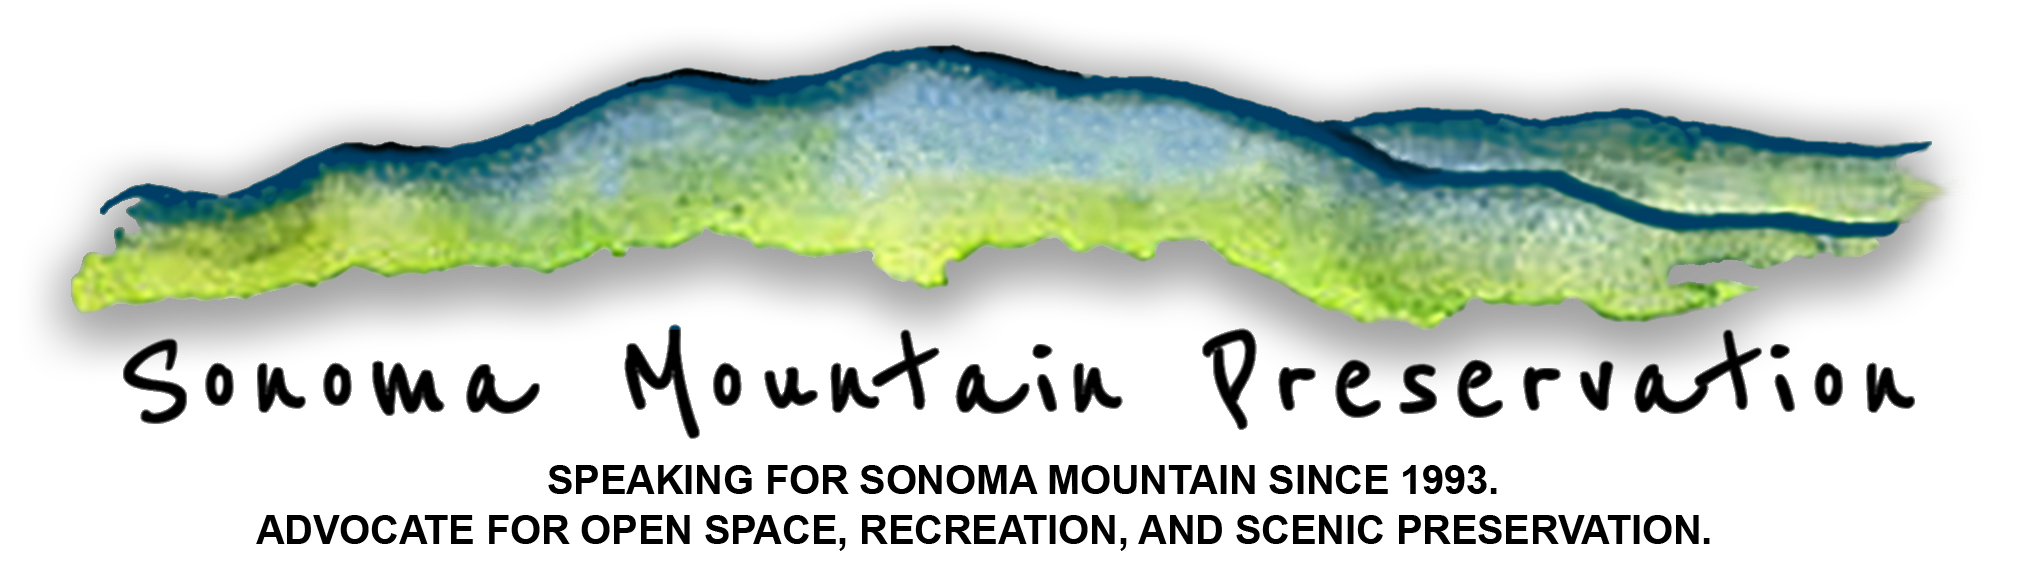 sonoma mountain preservation logo